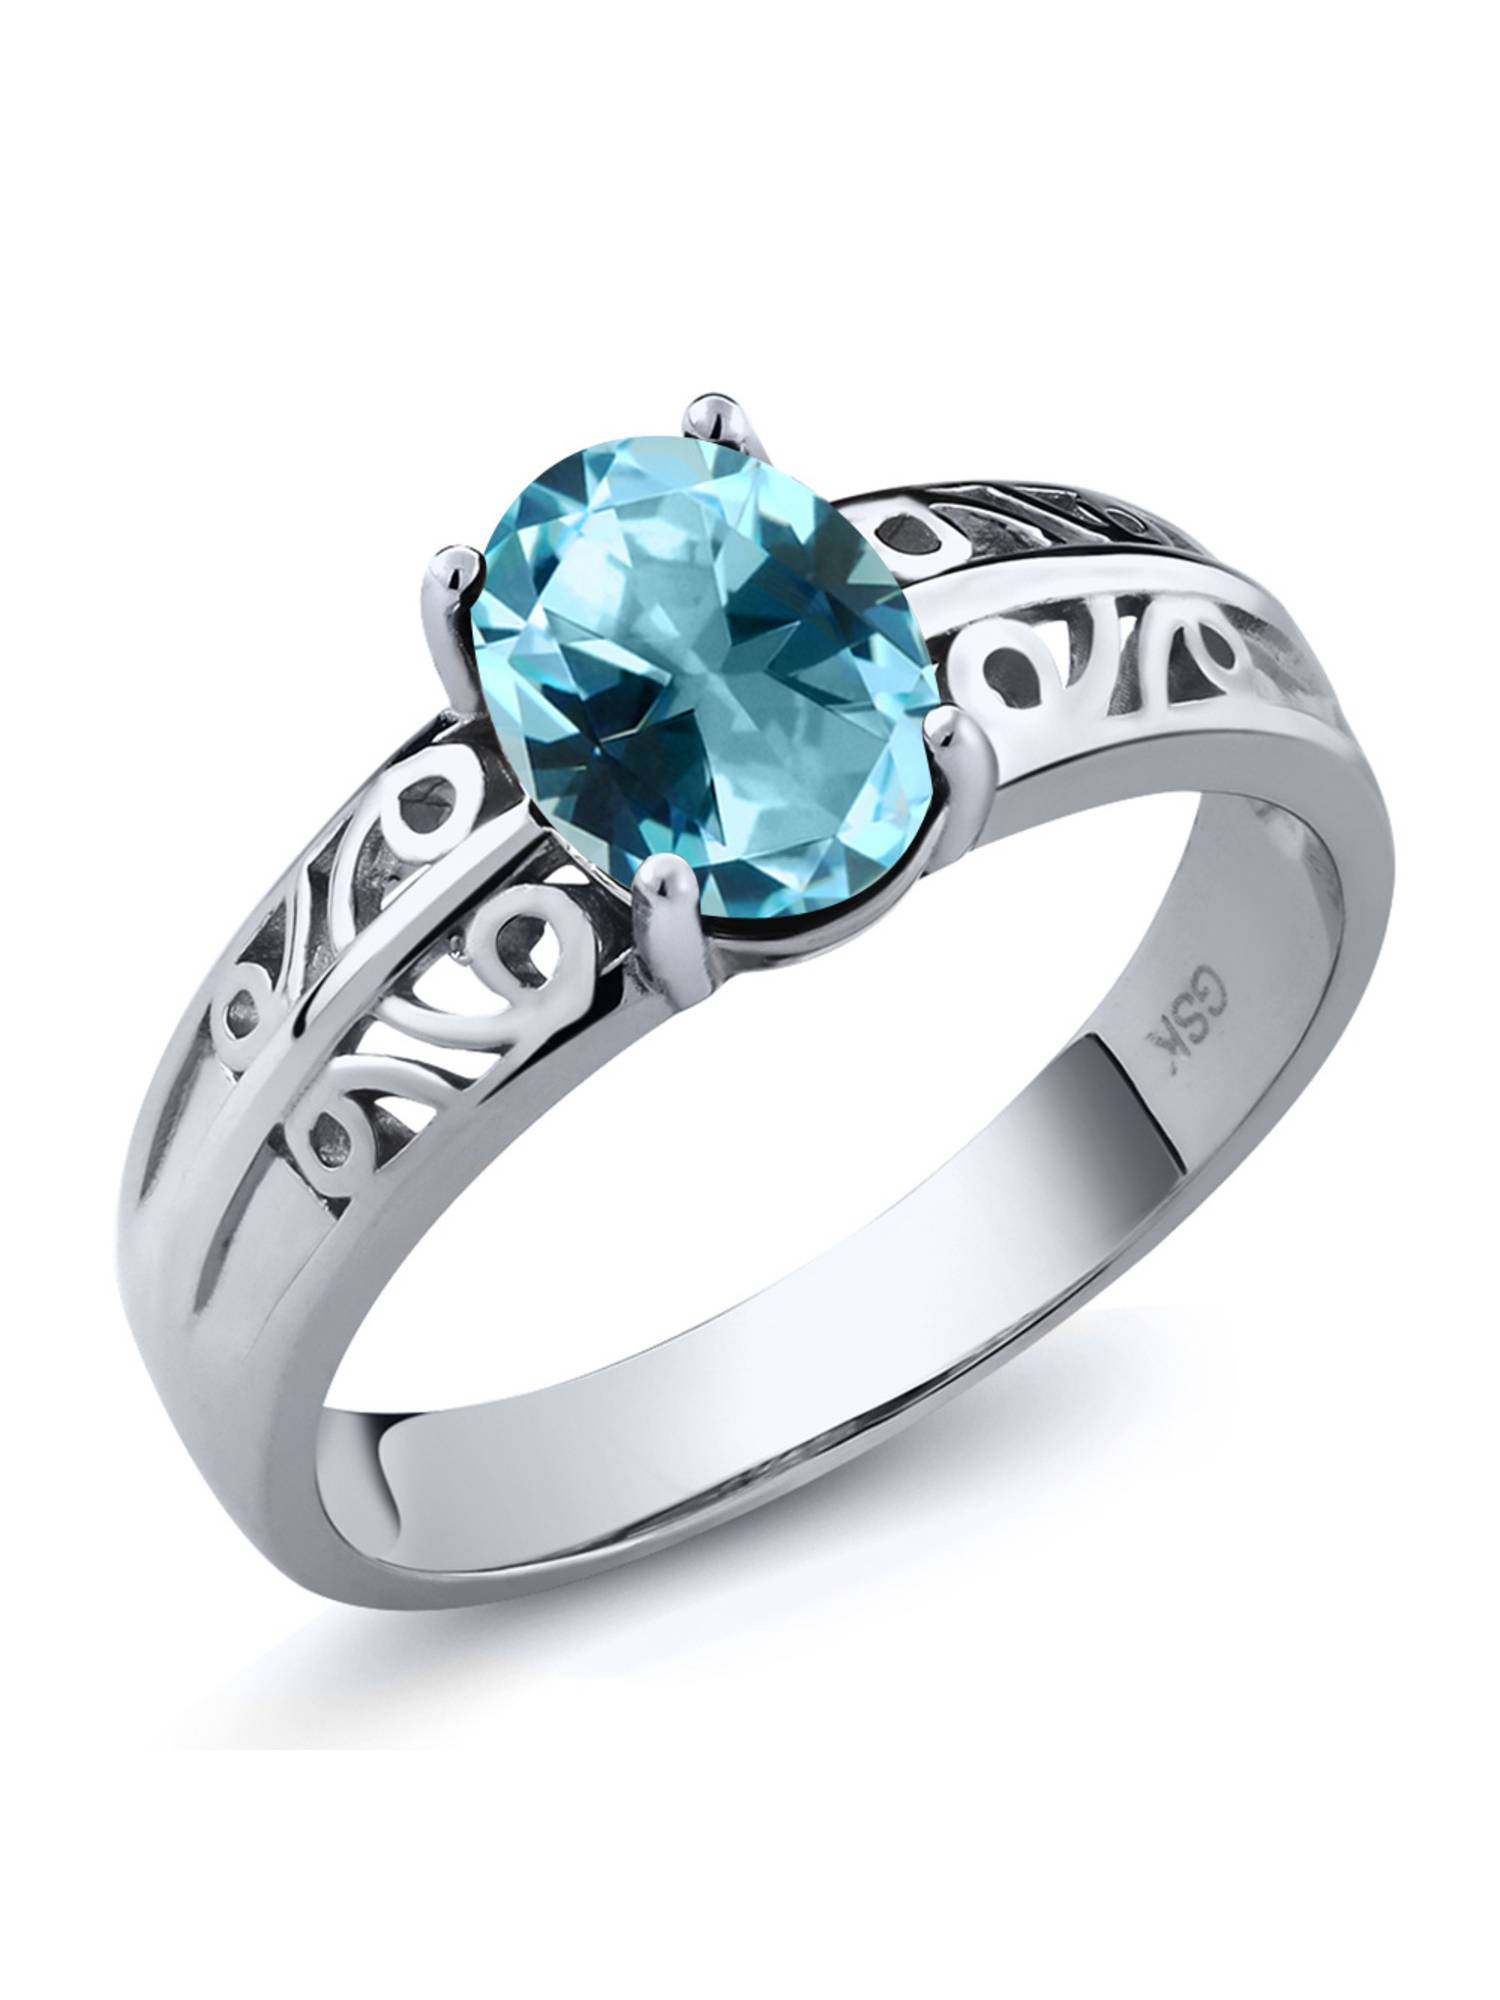 925 Sterling Silver Ring Set with Oval Ice Blue Topaz from Swarovski by